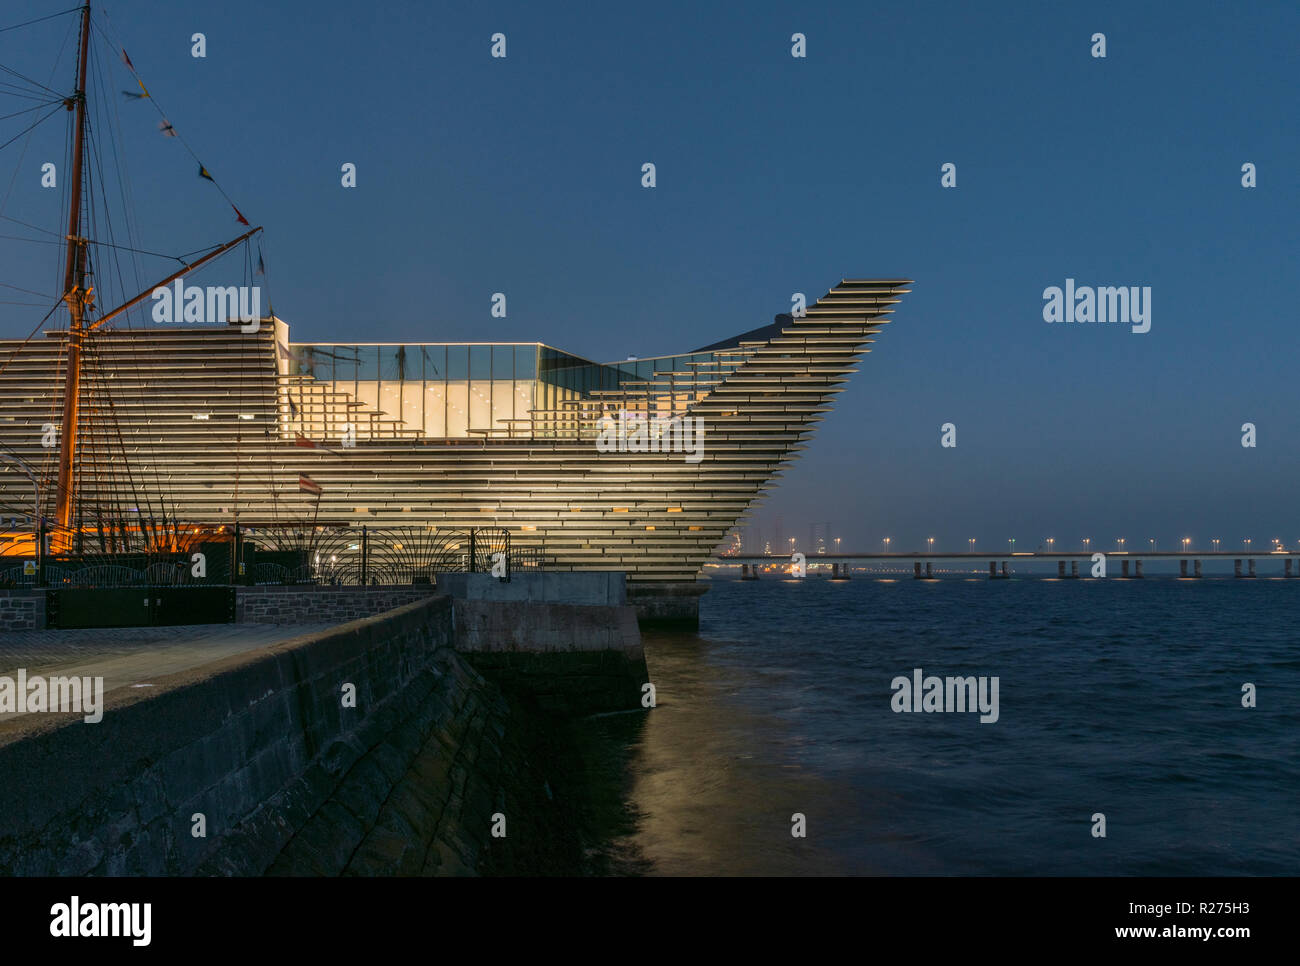 The new V&A design museum on Dundee's regenerated waterfront has already passed the 100,000 visitor mark within 2months of opening, Dundee Scotland UK Stock Photo